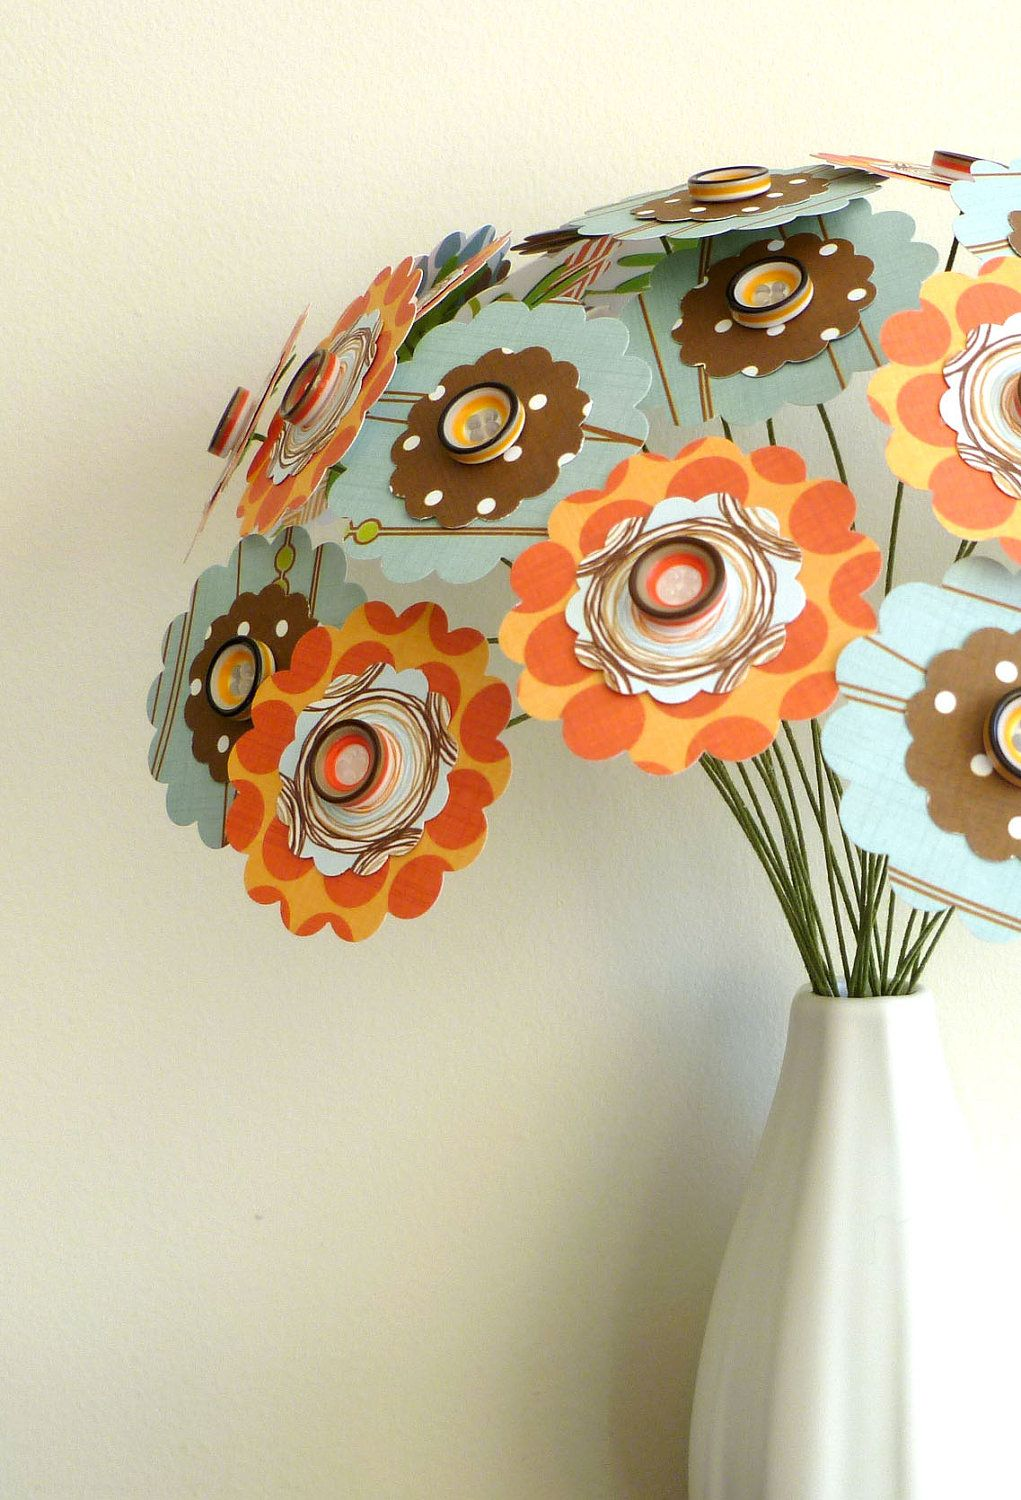 Paper Flower Bouquet Patterned Orange Blue And Brown 24 Stems 11